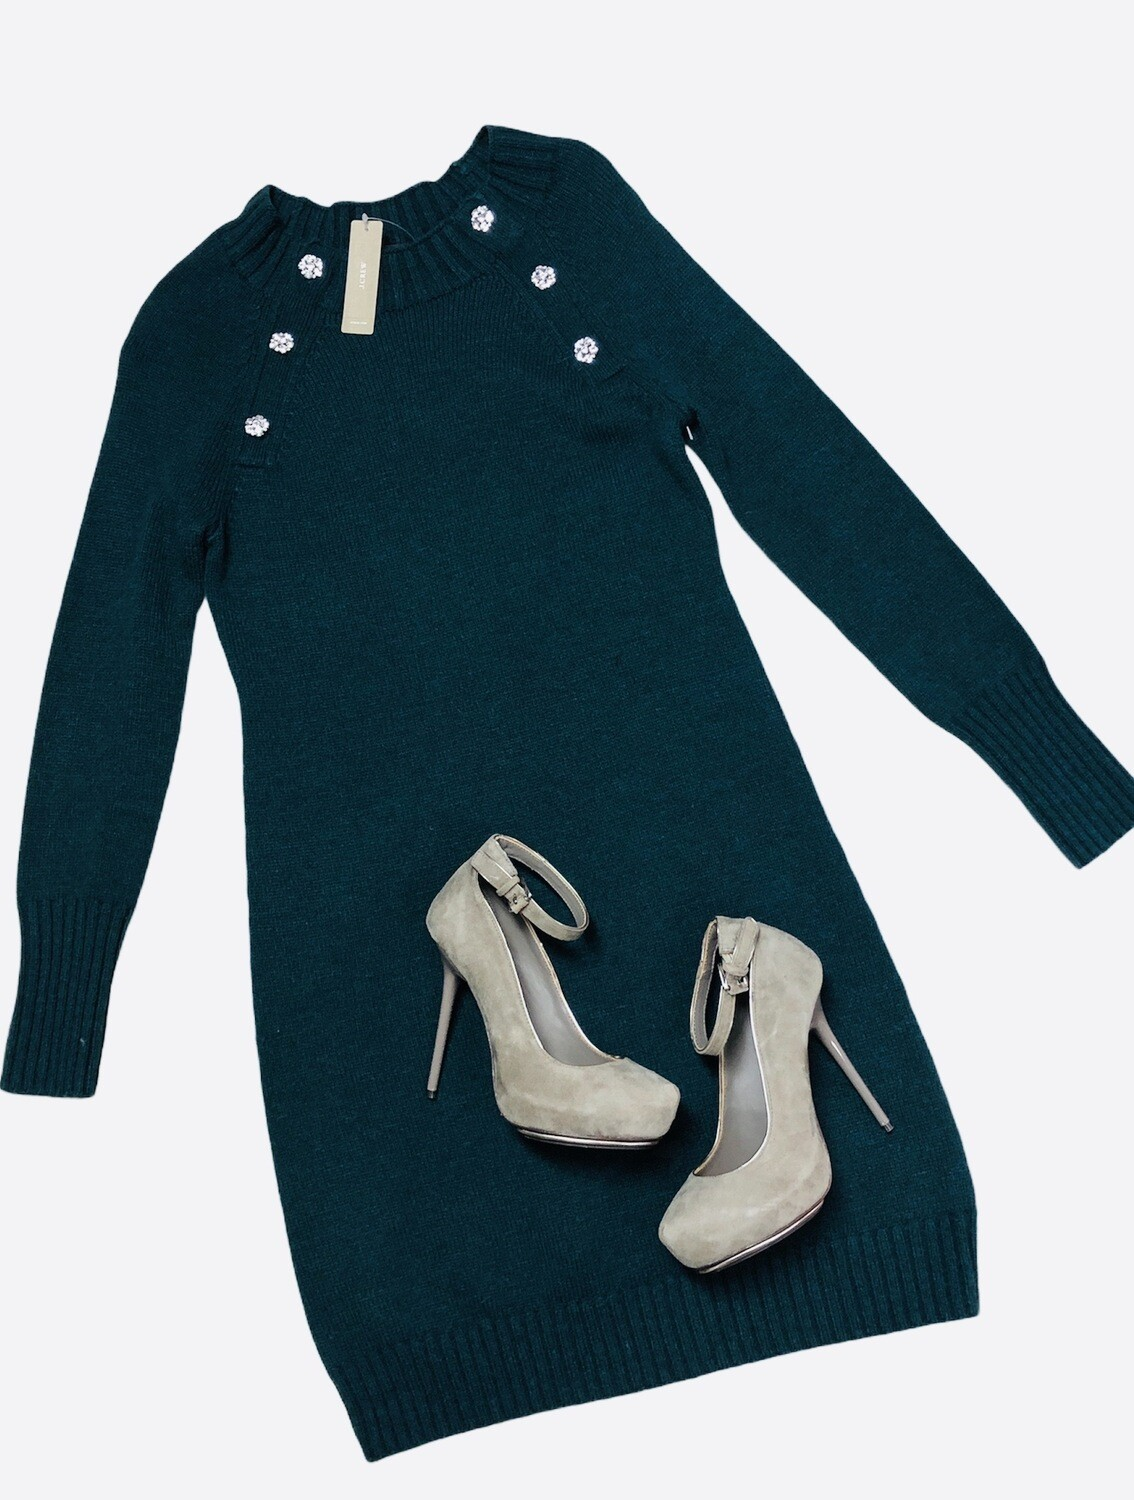 New J CREW Emerald Green Knit Sweater Dress with Rhinestone Buttons size XS